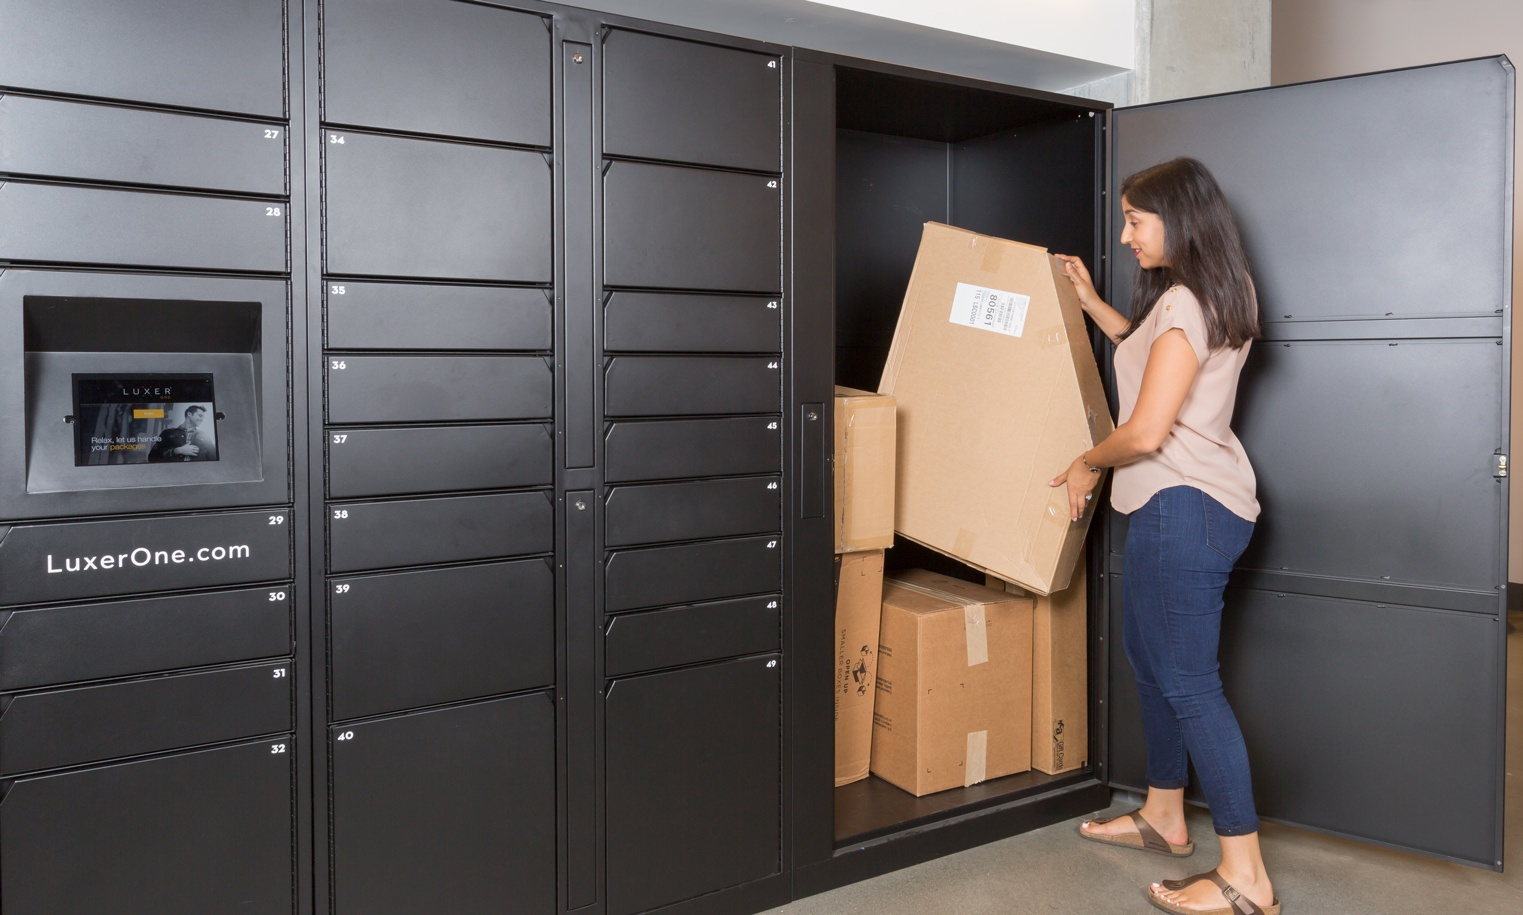 A woman removes a large package from the floor-to-ceiling Luxer One oversized locker. Four other packages remain inside the locker.